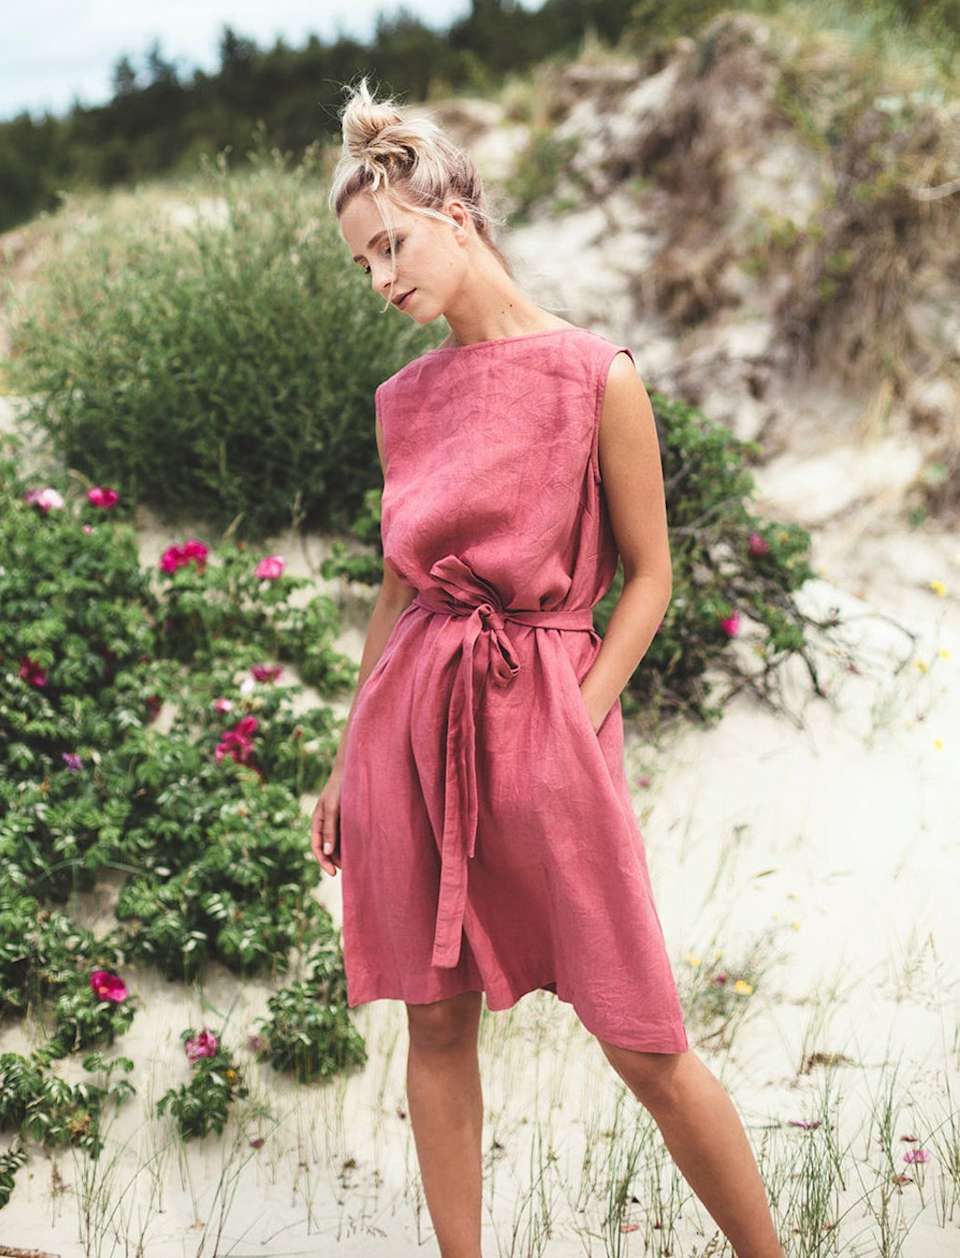 """<h2>Etsy Nida Linen Dress </h2><br>A top-bought treat from our exhaustive roundup of <a href=""""https://refinery29.com/en-us/summer-dresses-best-reviews"""" rel=""""nofollow noopener"""" target=""""_blank"""" data-ylk=""""slk:the absolute best summer dresses"""" class=""""link rapid-noclick-resp"""">the absolute best summer dresses</a>. This relaxed linen number is beloved by readers and reviewers alike for its gorgeous fabric and beautiful drape that can be customized to perfection thanks to a convertible belt.<br><br><em>Shop <strong><a href=""""https://www.etsy.com/listing/540197787/nida-dress-back-v-neck-linen-dress"""" rel=""""nofollow noopener"""" target=""""_blank"""" data-ylk=""""slk:LinenFox"""" class=""""link rapid-noclick-resp"""">LinenFox</a></strong></em><br><br><strong>Linenfox</strong> Nida Dress, $, available at <a href=""""https://go.skimresources.com/?id=30283X879131&url=https%3A%2F%2Fwww.etsy.com%2Flisting%2F540197787%2Fnida-dress-back-v-neck-linen-dress"""" rel=""""nofollow noopener"""" target=""""_blank"""" data-ylk=""""slk:Etsy"""" class=""""link rapid-noclick-resp"""">Etsy</a>"""